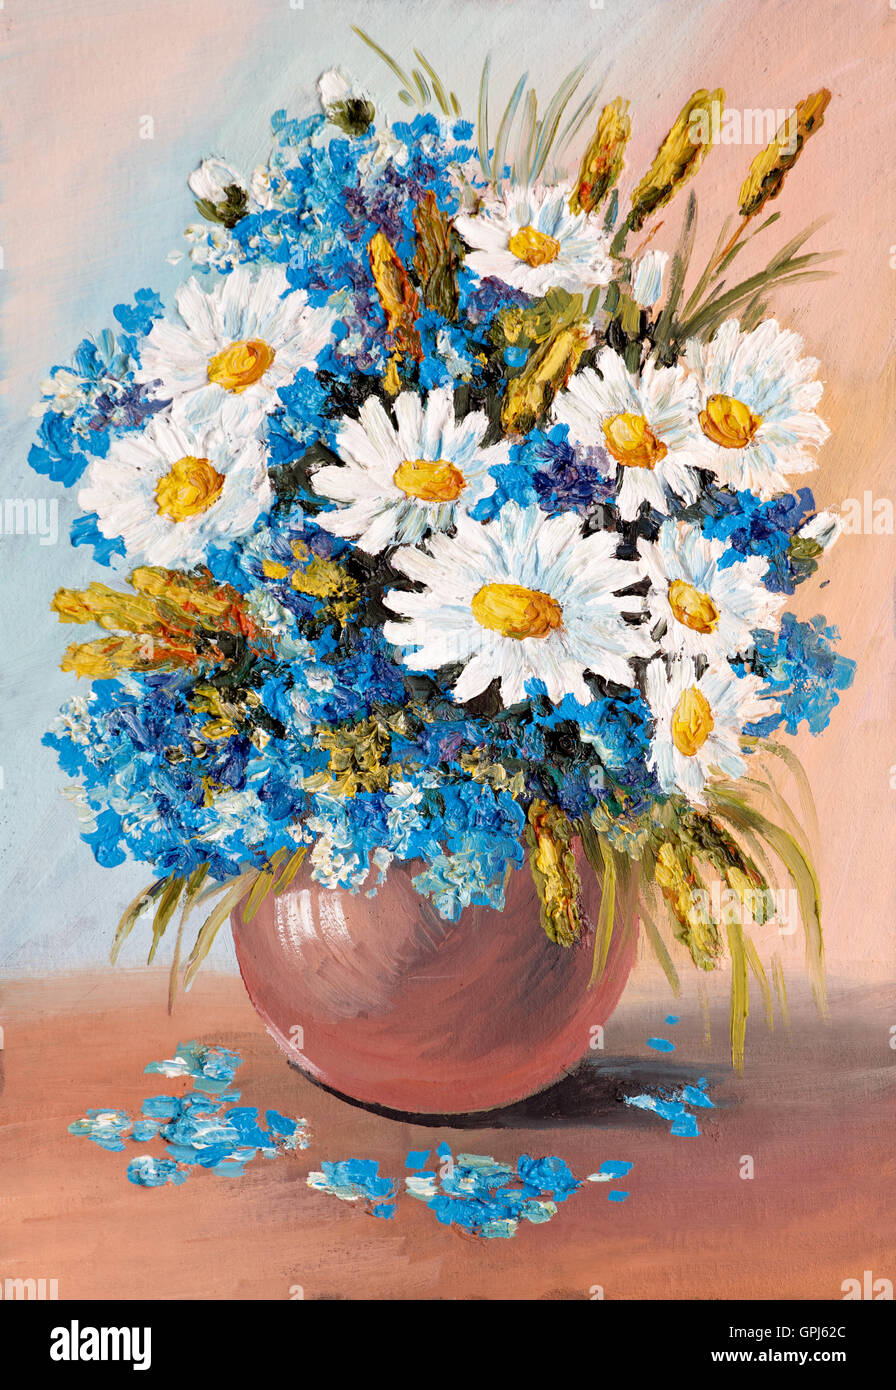 Oil Painting - still life, a bouquet of flowers, vase, agriculture ...